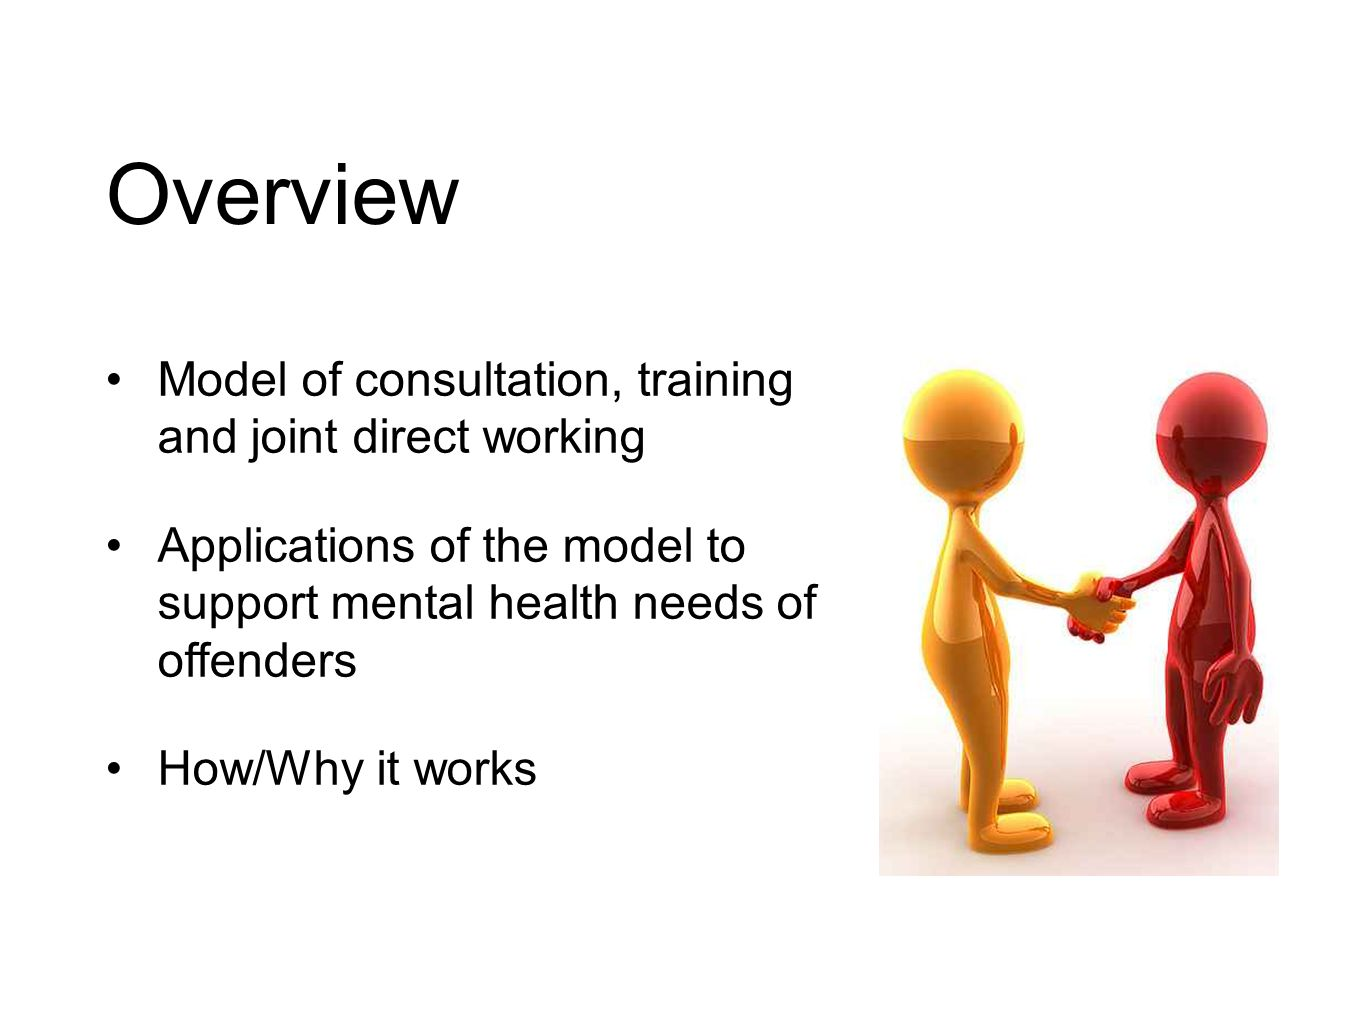 Overview Model of consultation, training and joint direct working Applications of the model to support mental health needs of offenders How/Why it works